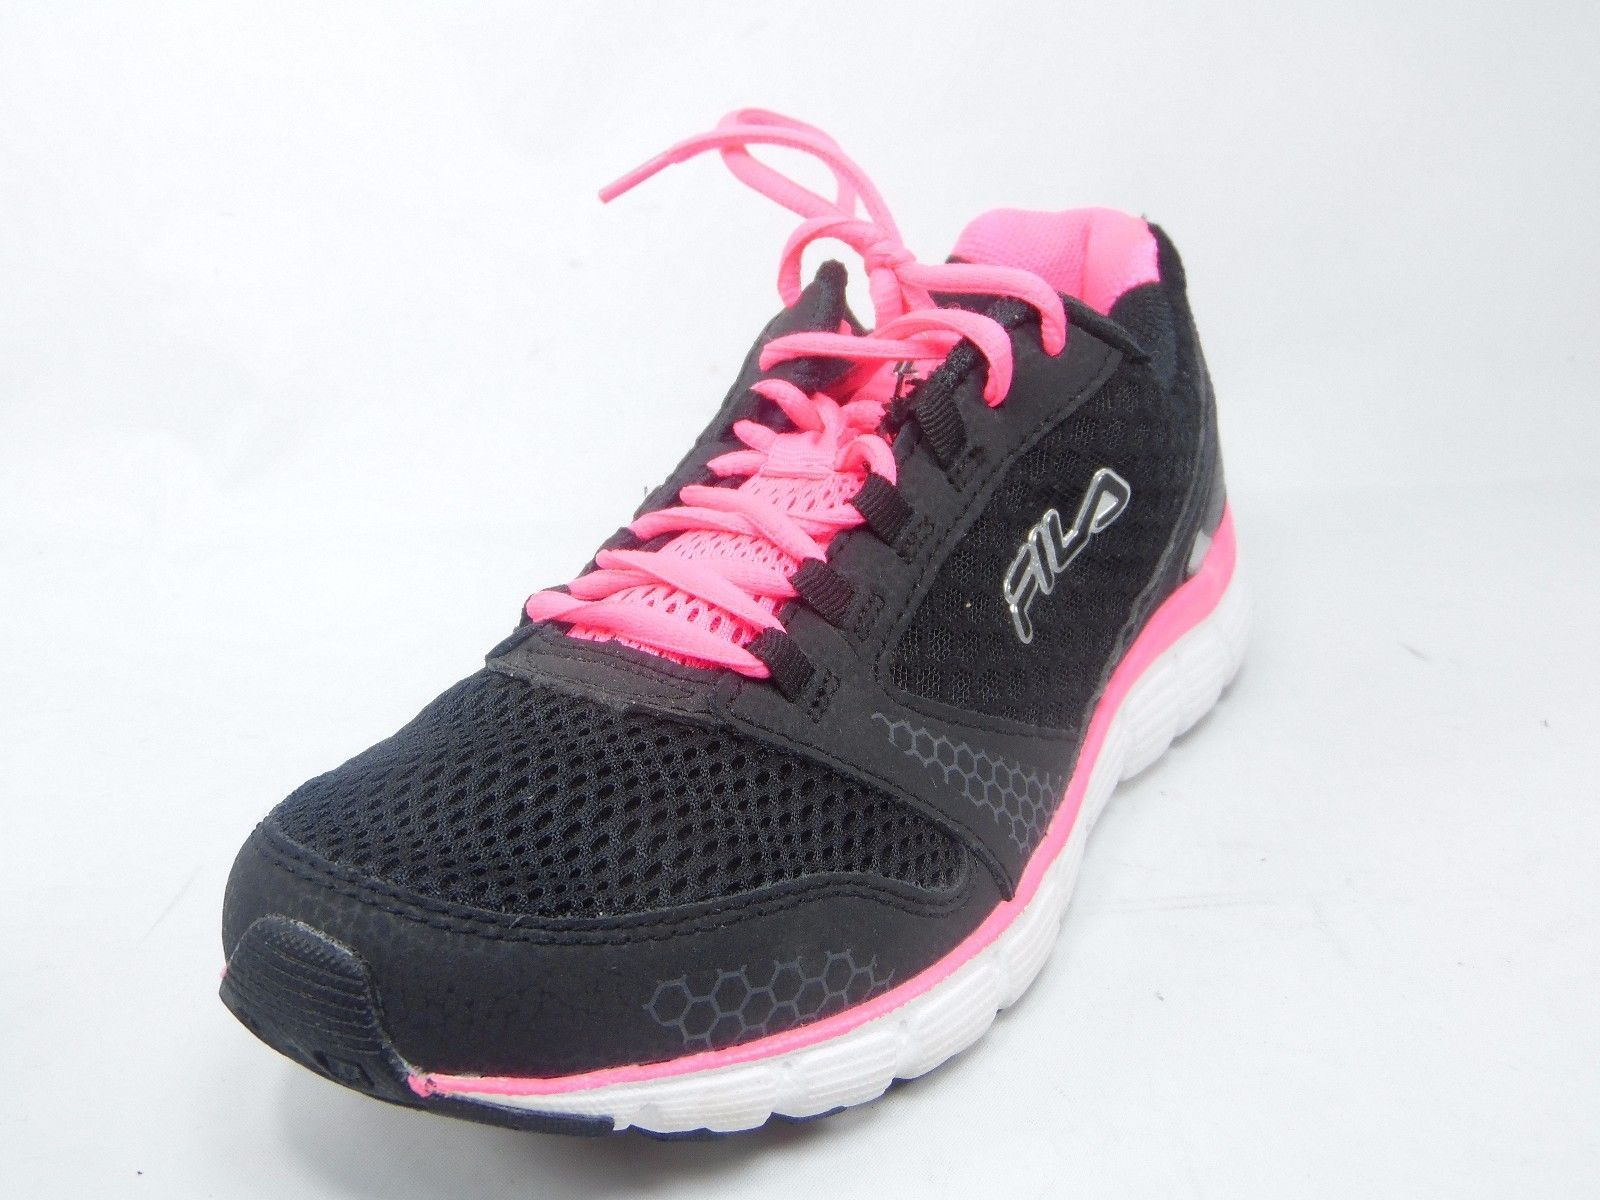 d89f49e7d6ae Fila Memory Windstar Womens Running Shoes and 50 similar items. S l1600